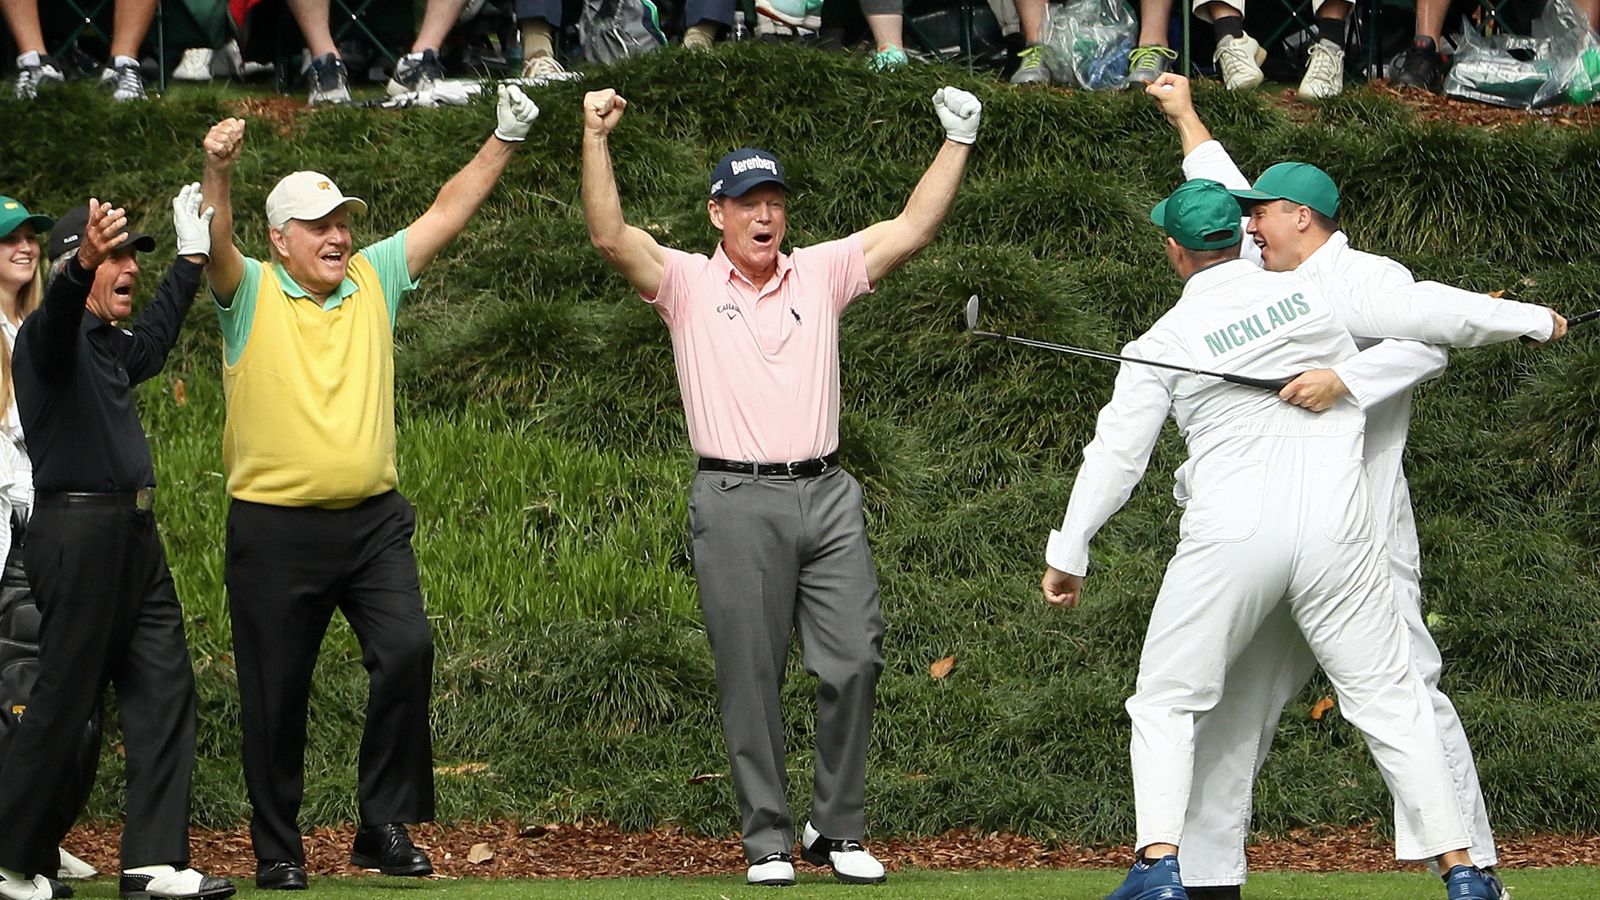 The masters par 3 contest betting betting teasers good